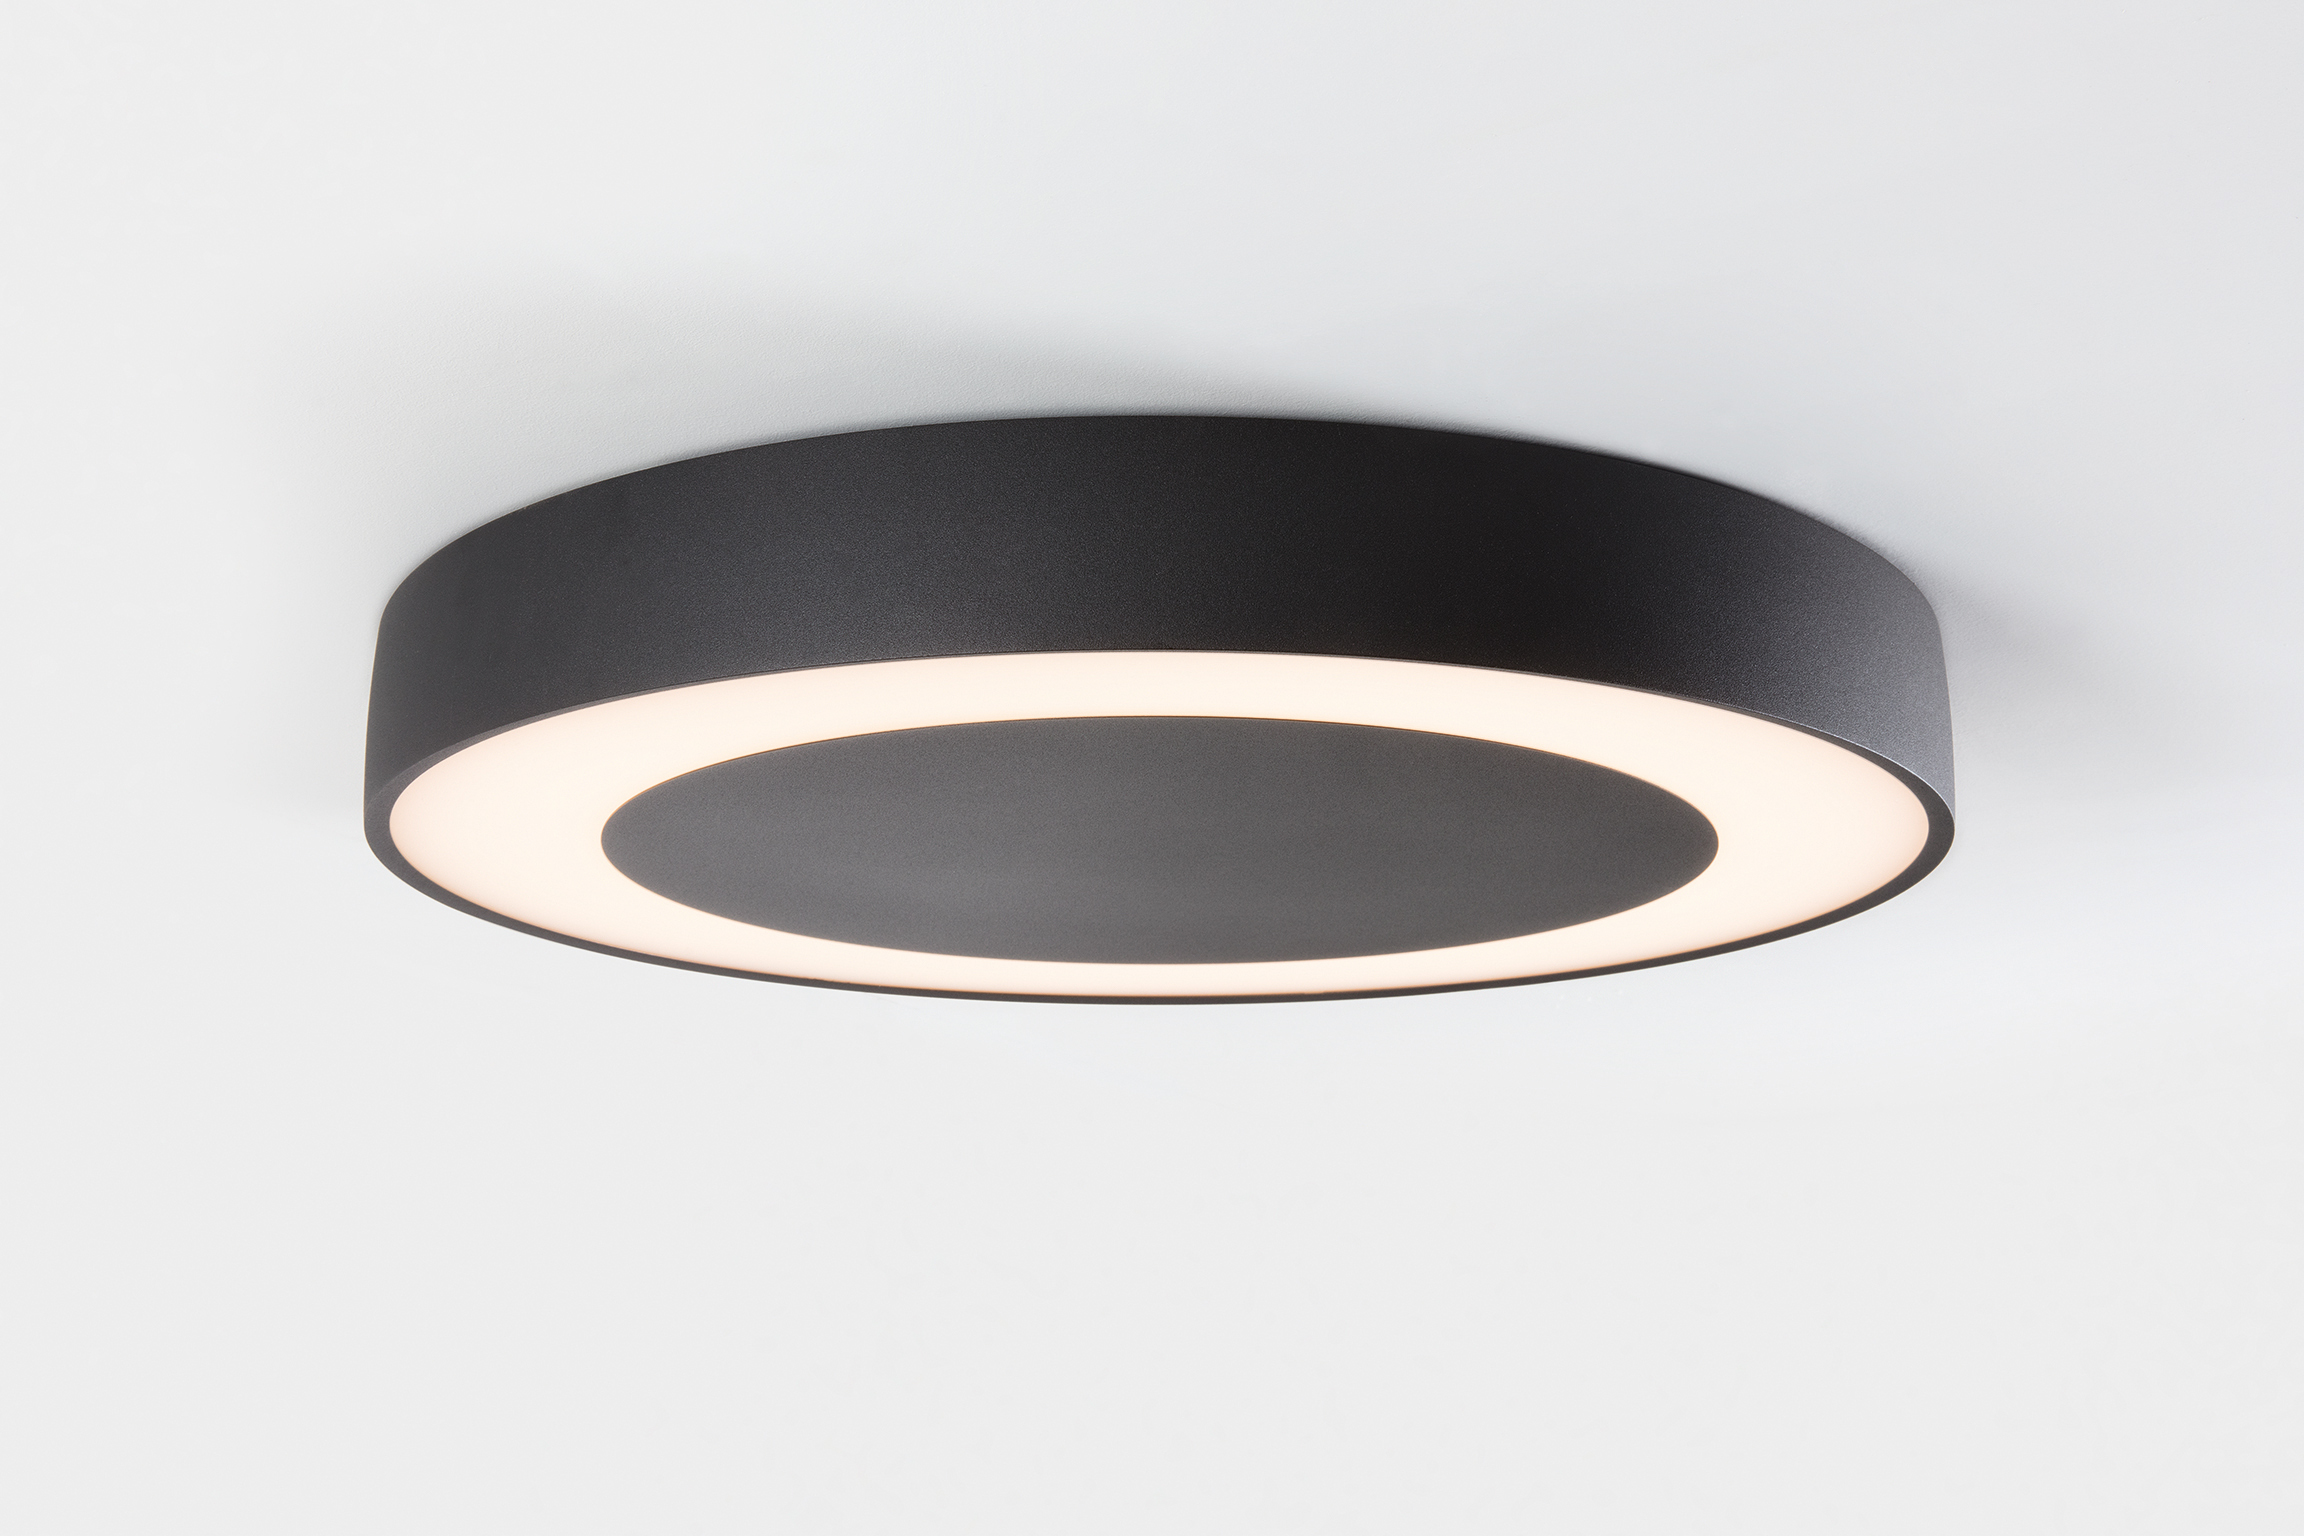 Flat moon eclips ceiling by modular lighting instruments stylepark flat moon eclips ceiling flat moon eclips ceiling mozeypictures Images